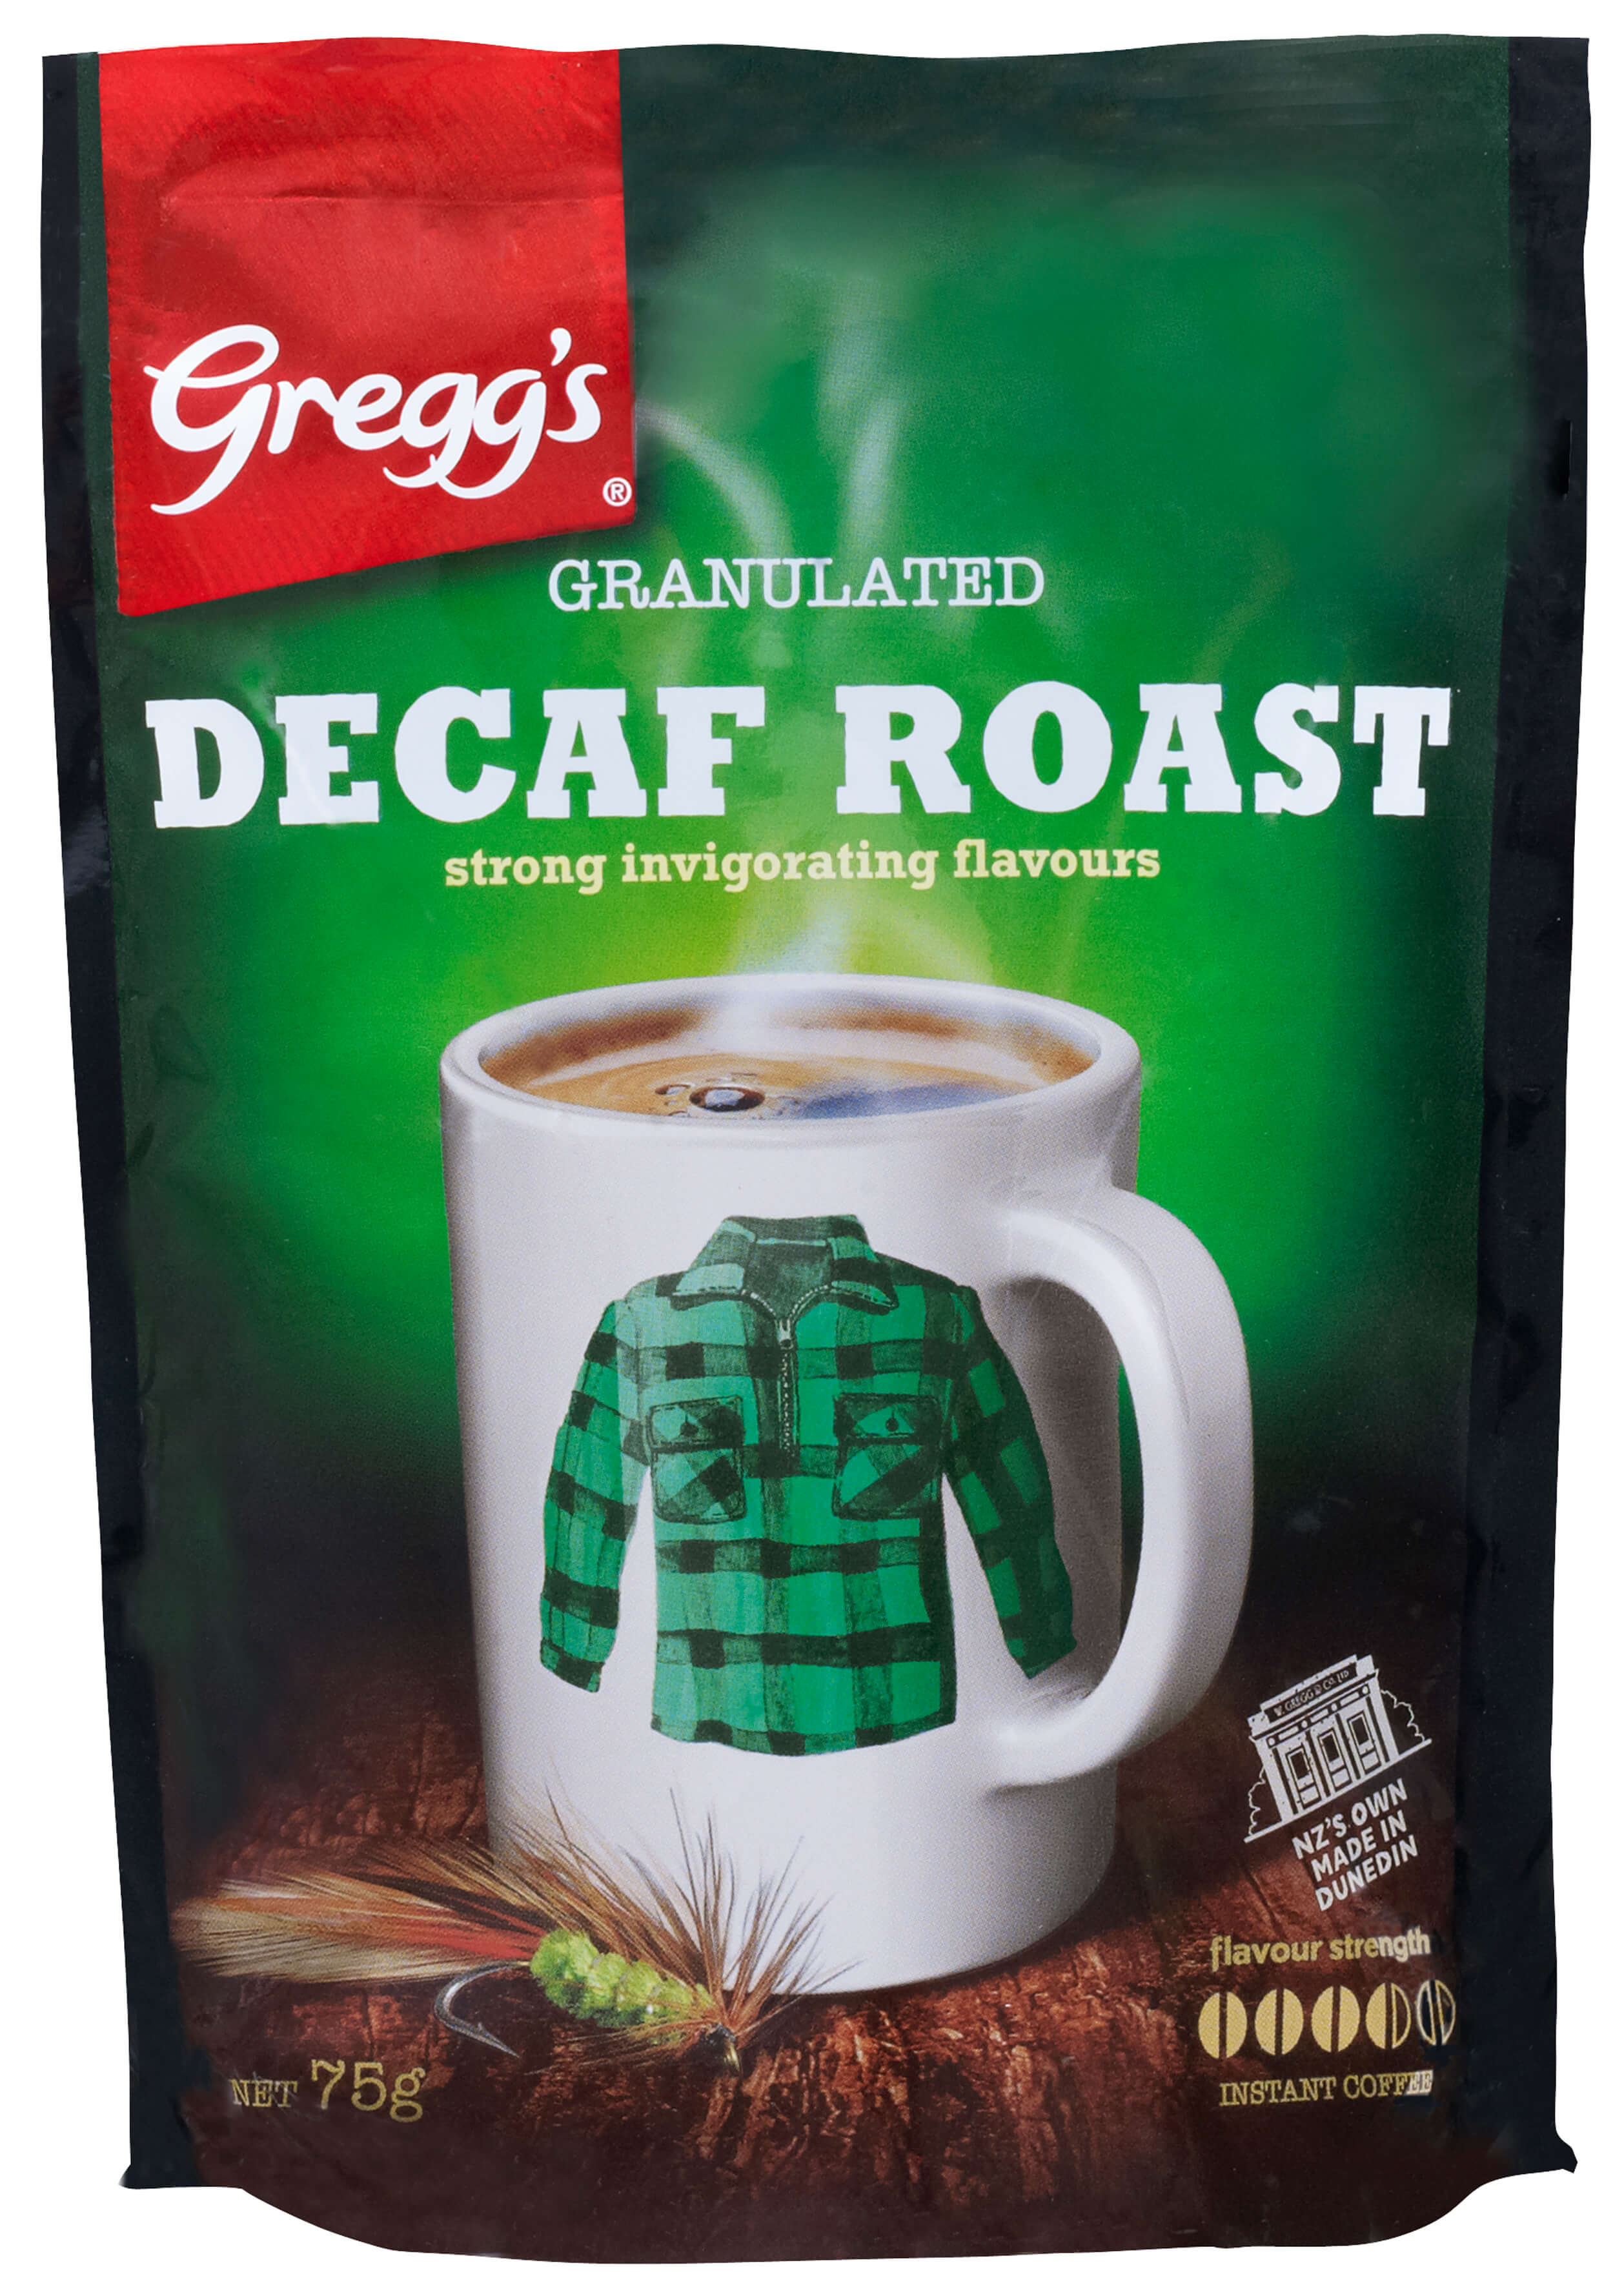 Decaf Roast Instant Coffee image